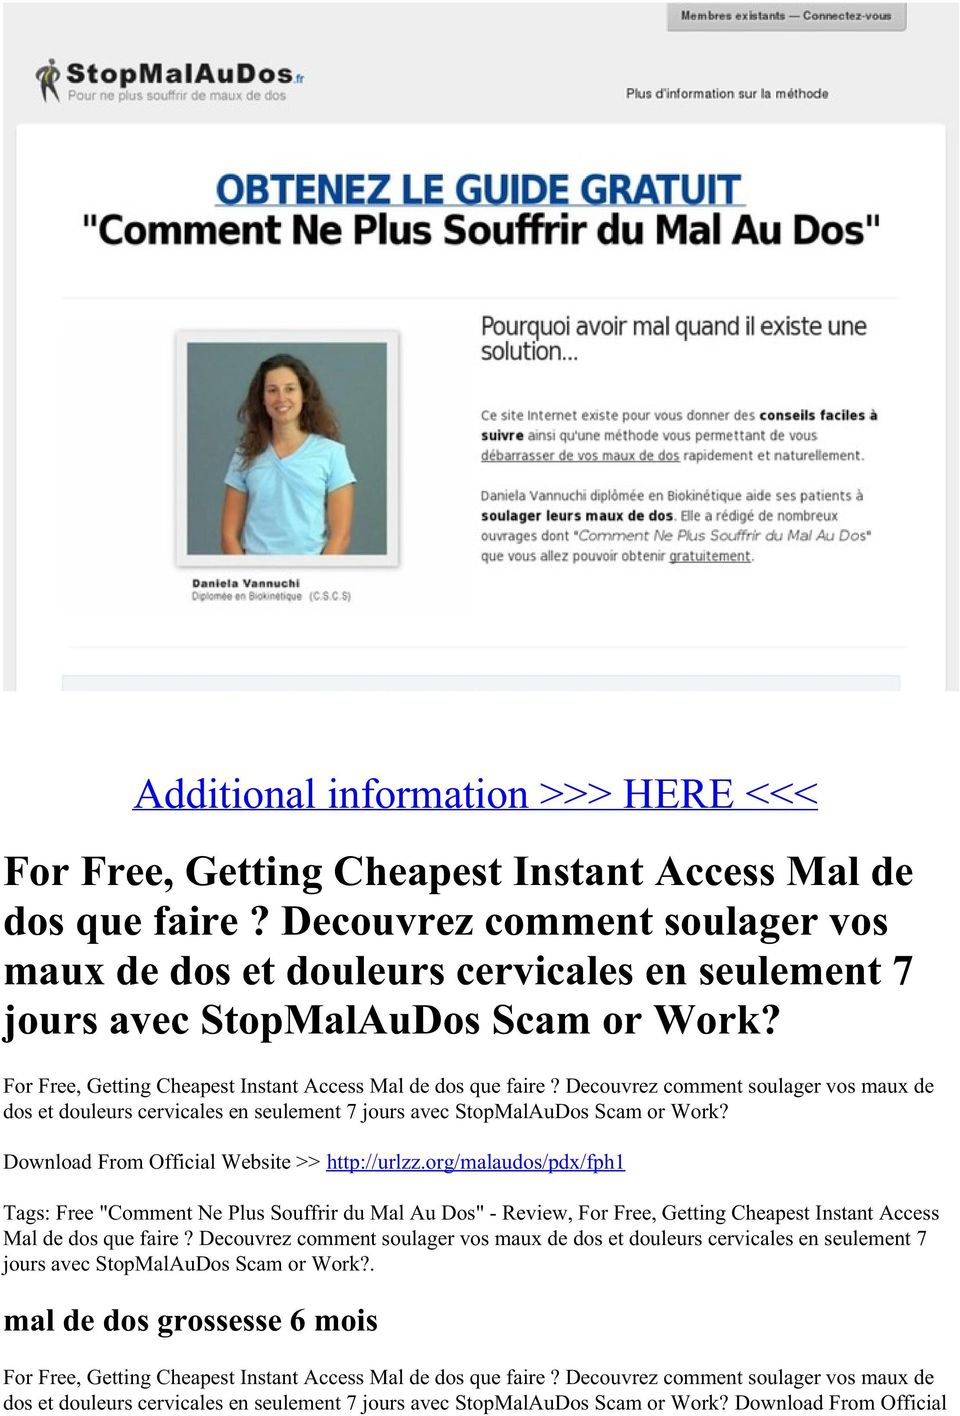 dos et douleurs cervicales en seulement 7 jours avec StopMalAuDos Scam or Work? Download From Official Website >> http://urlzz.